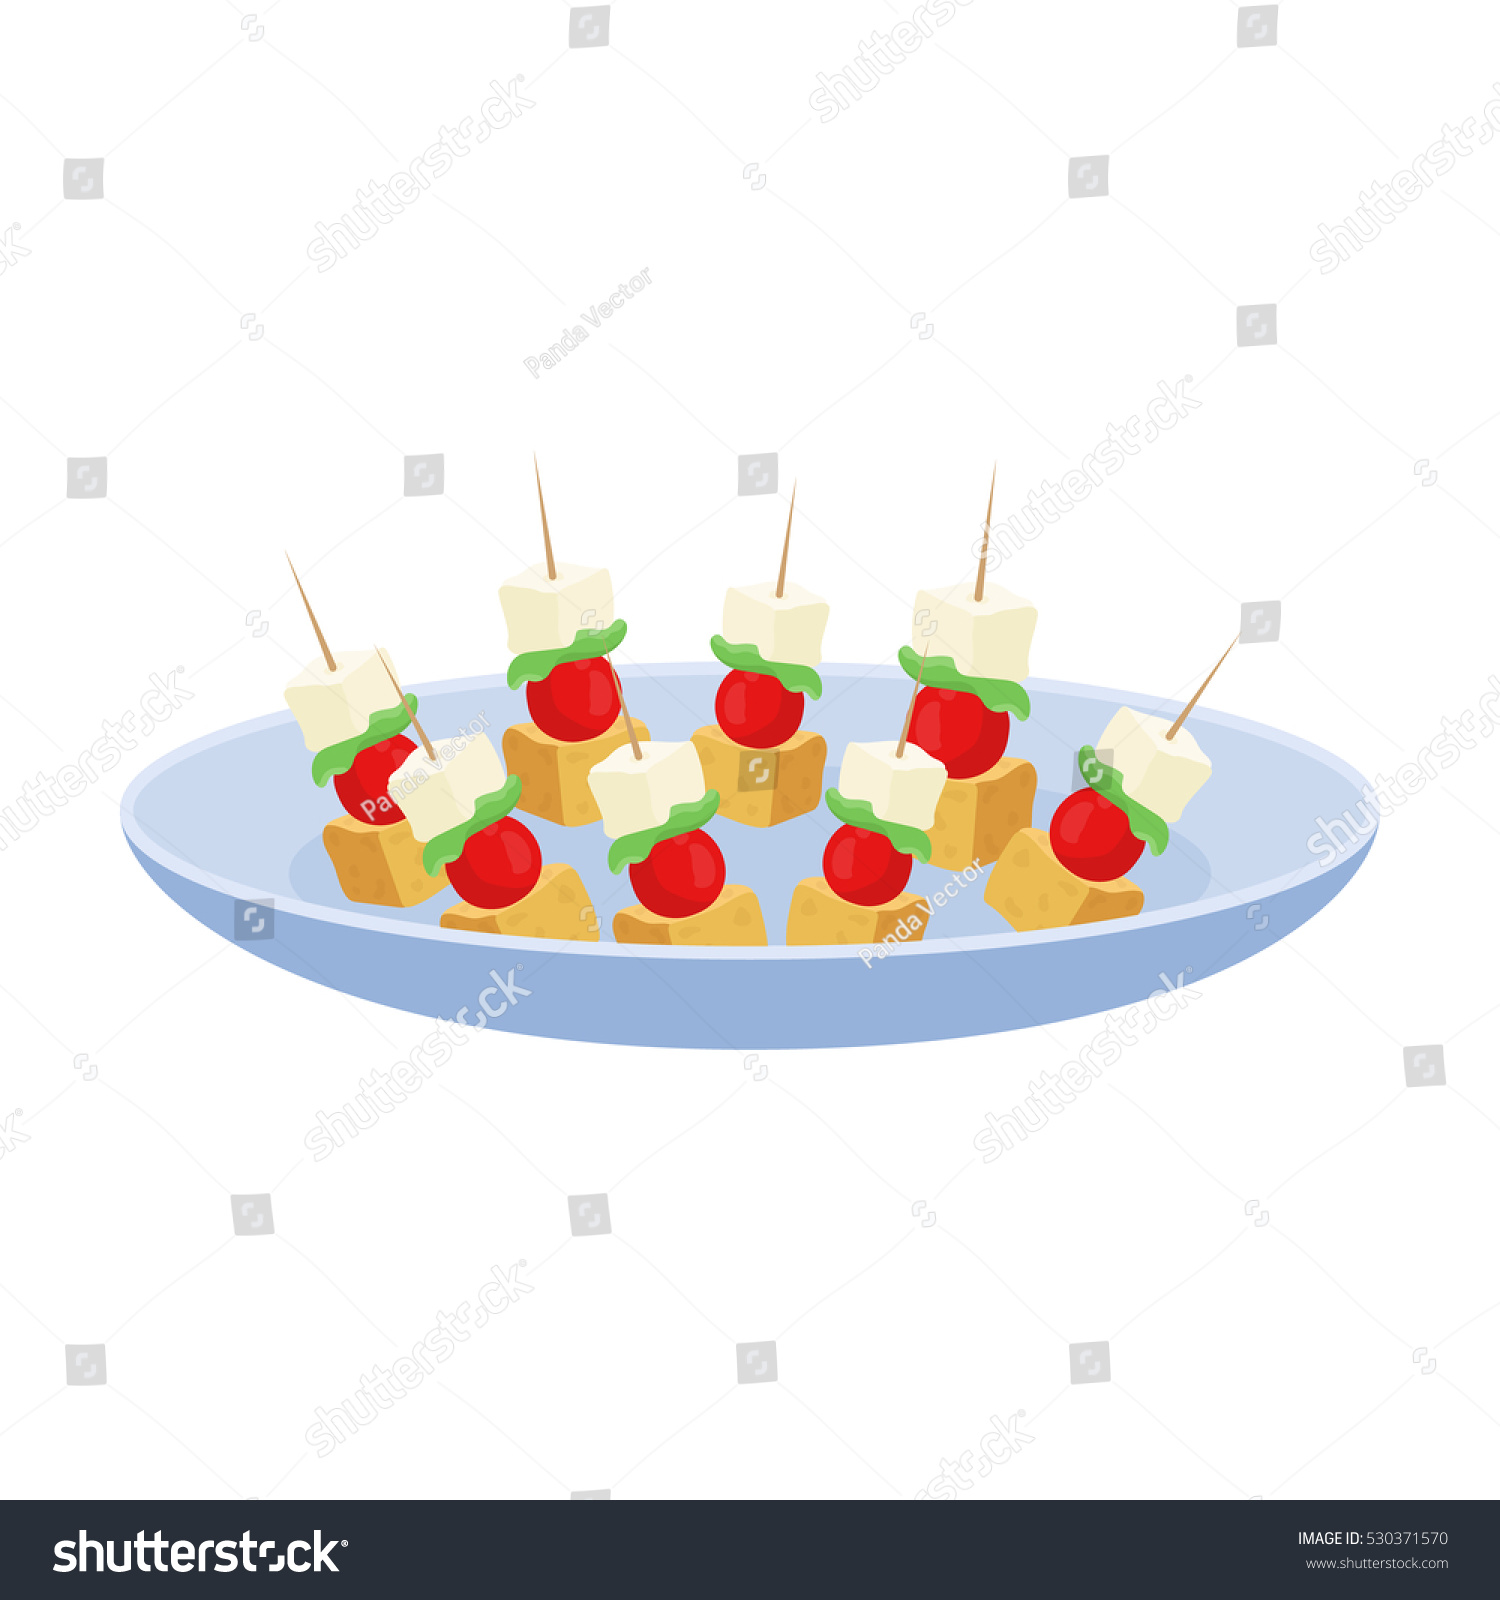 Canape on plate icon cartoon style stock vector 530371570 for Canape vector download